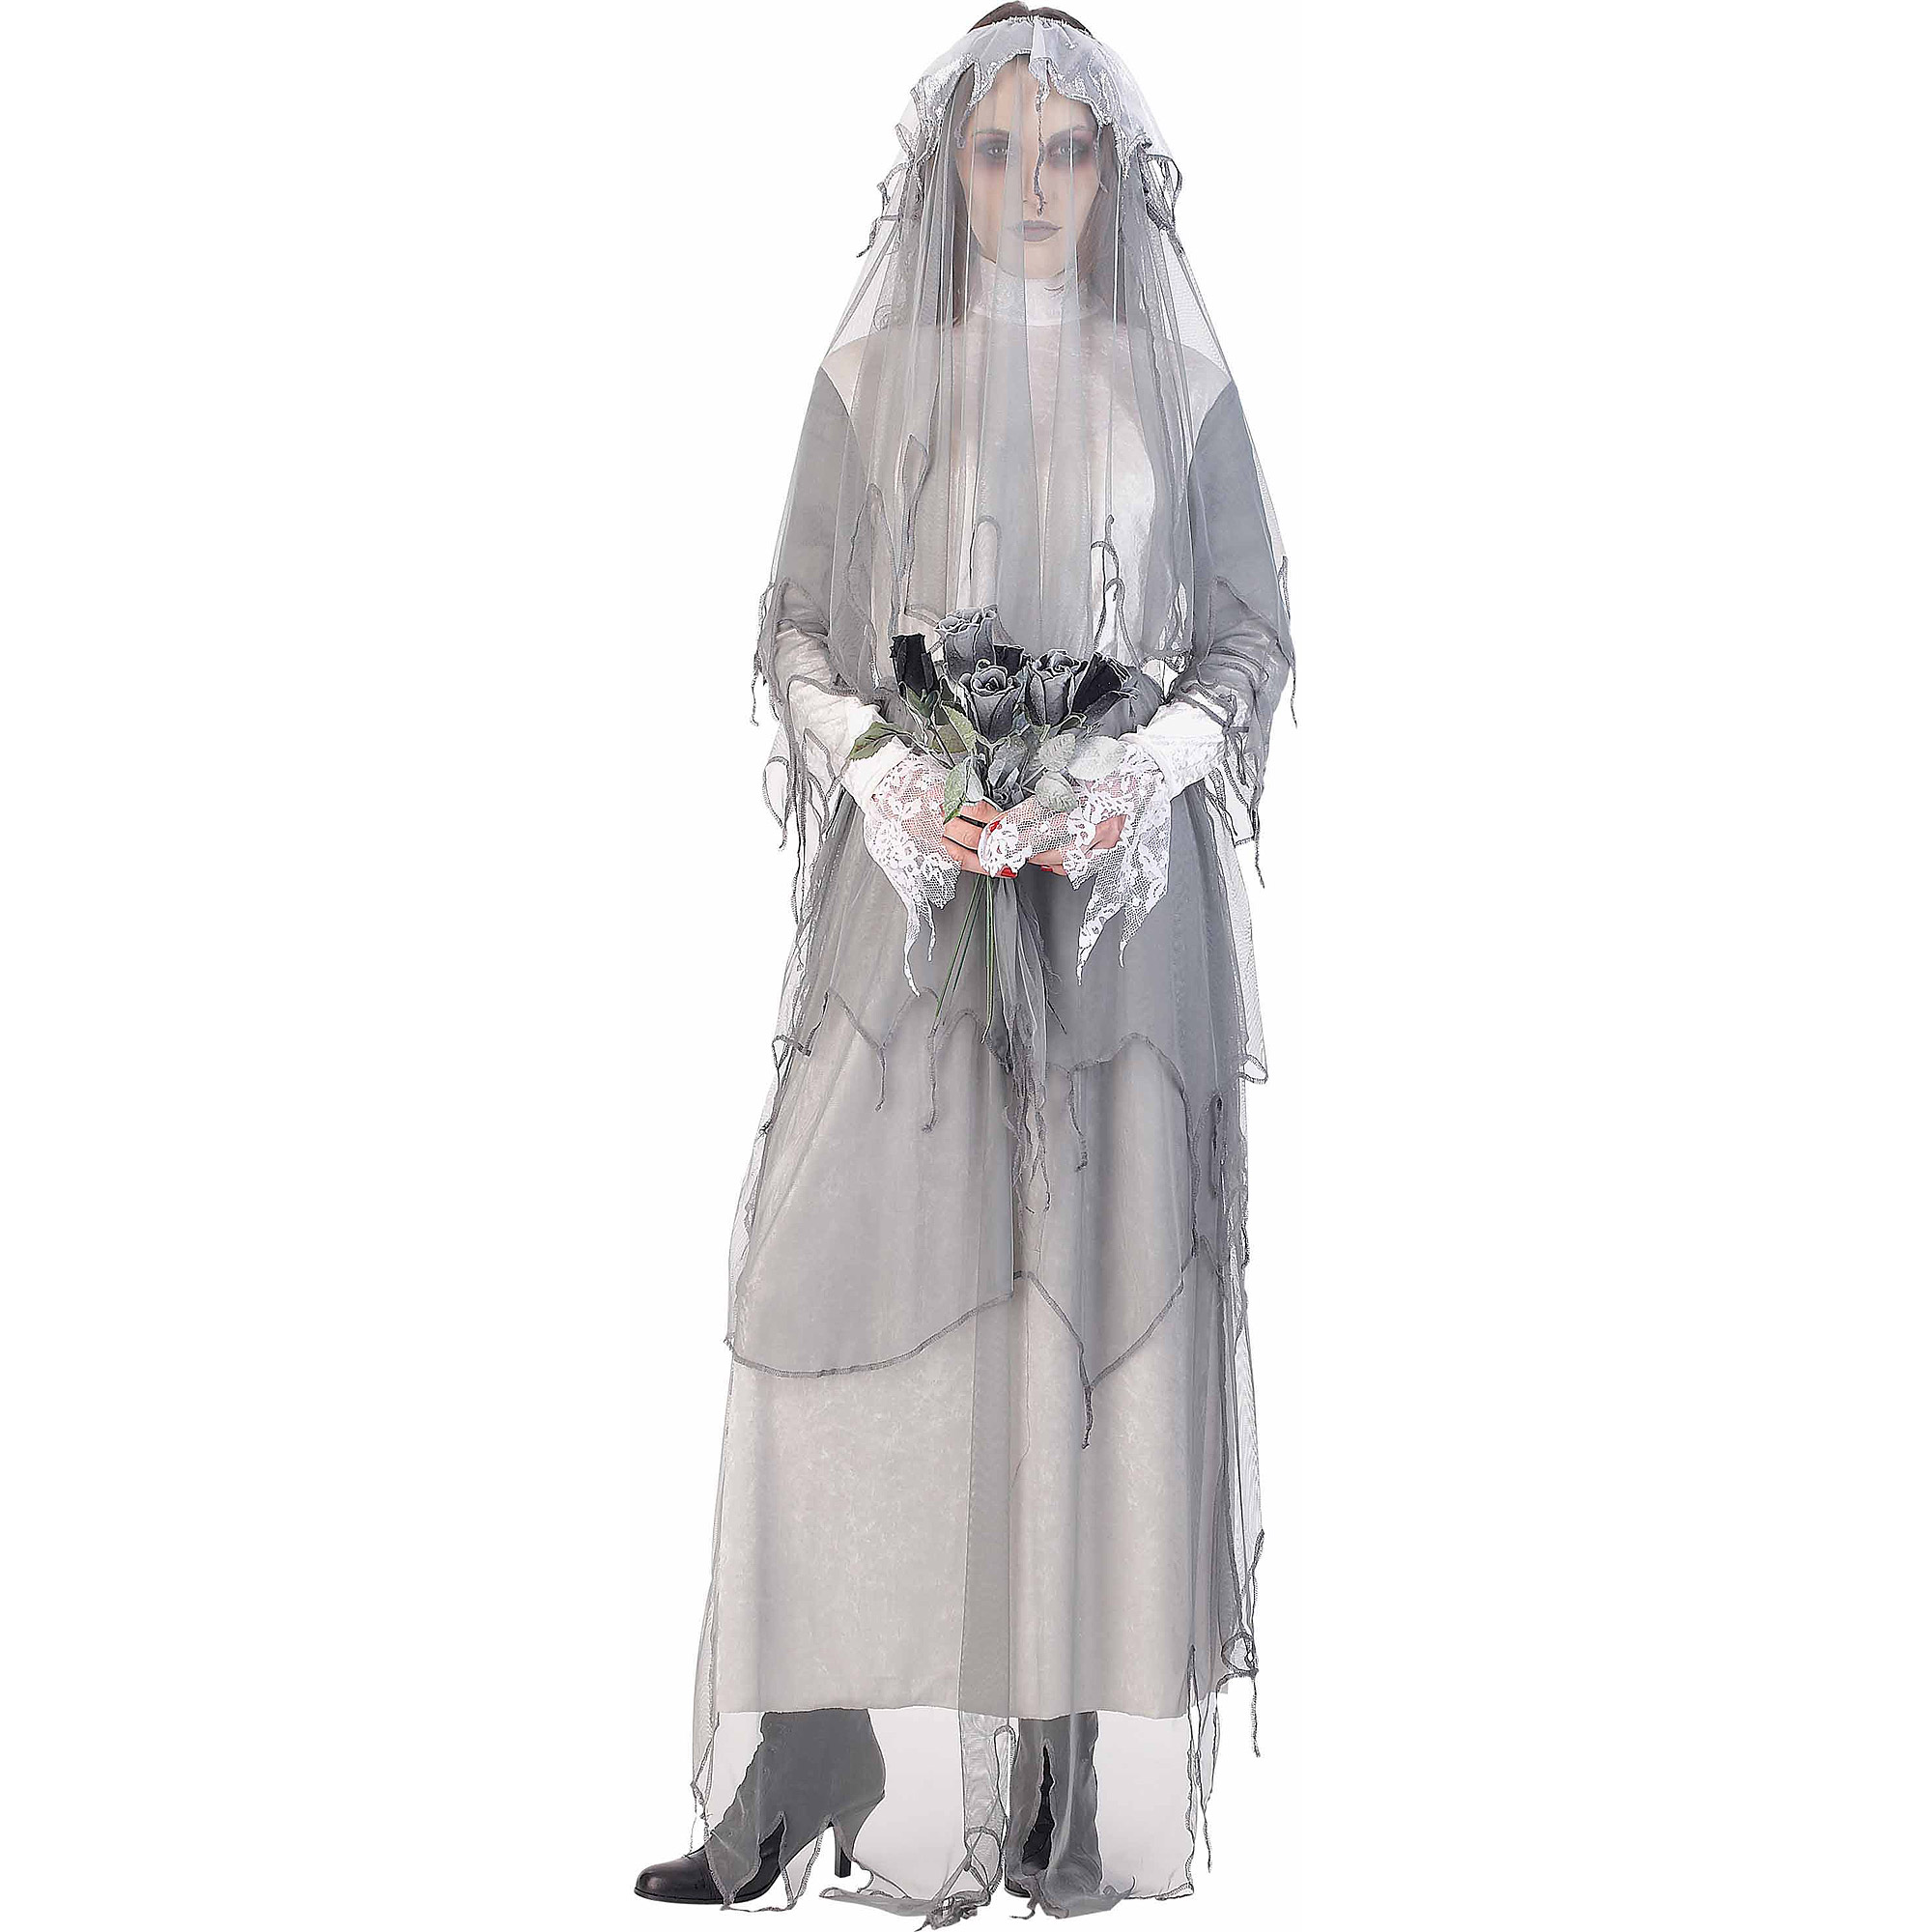 sc 1 st  Walmart & Lost Soul The Ghost Bride Adult Halloween Costume - Walmart.com